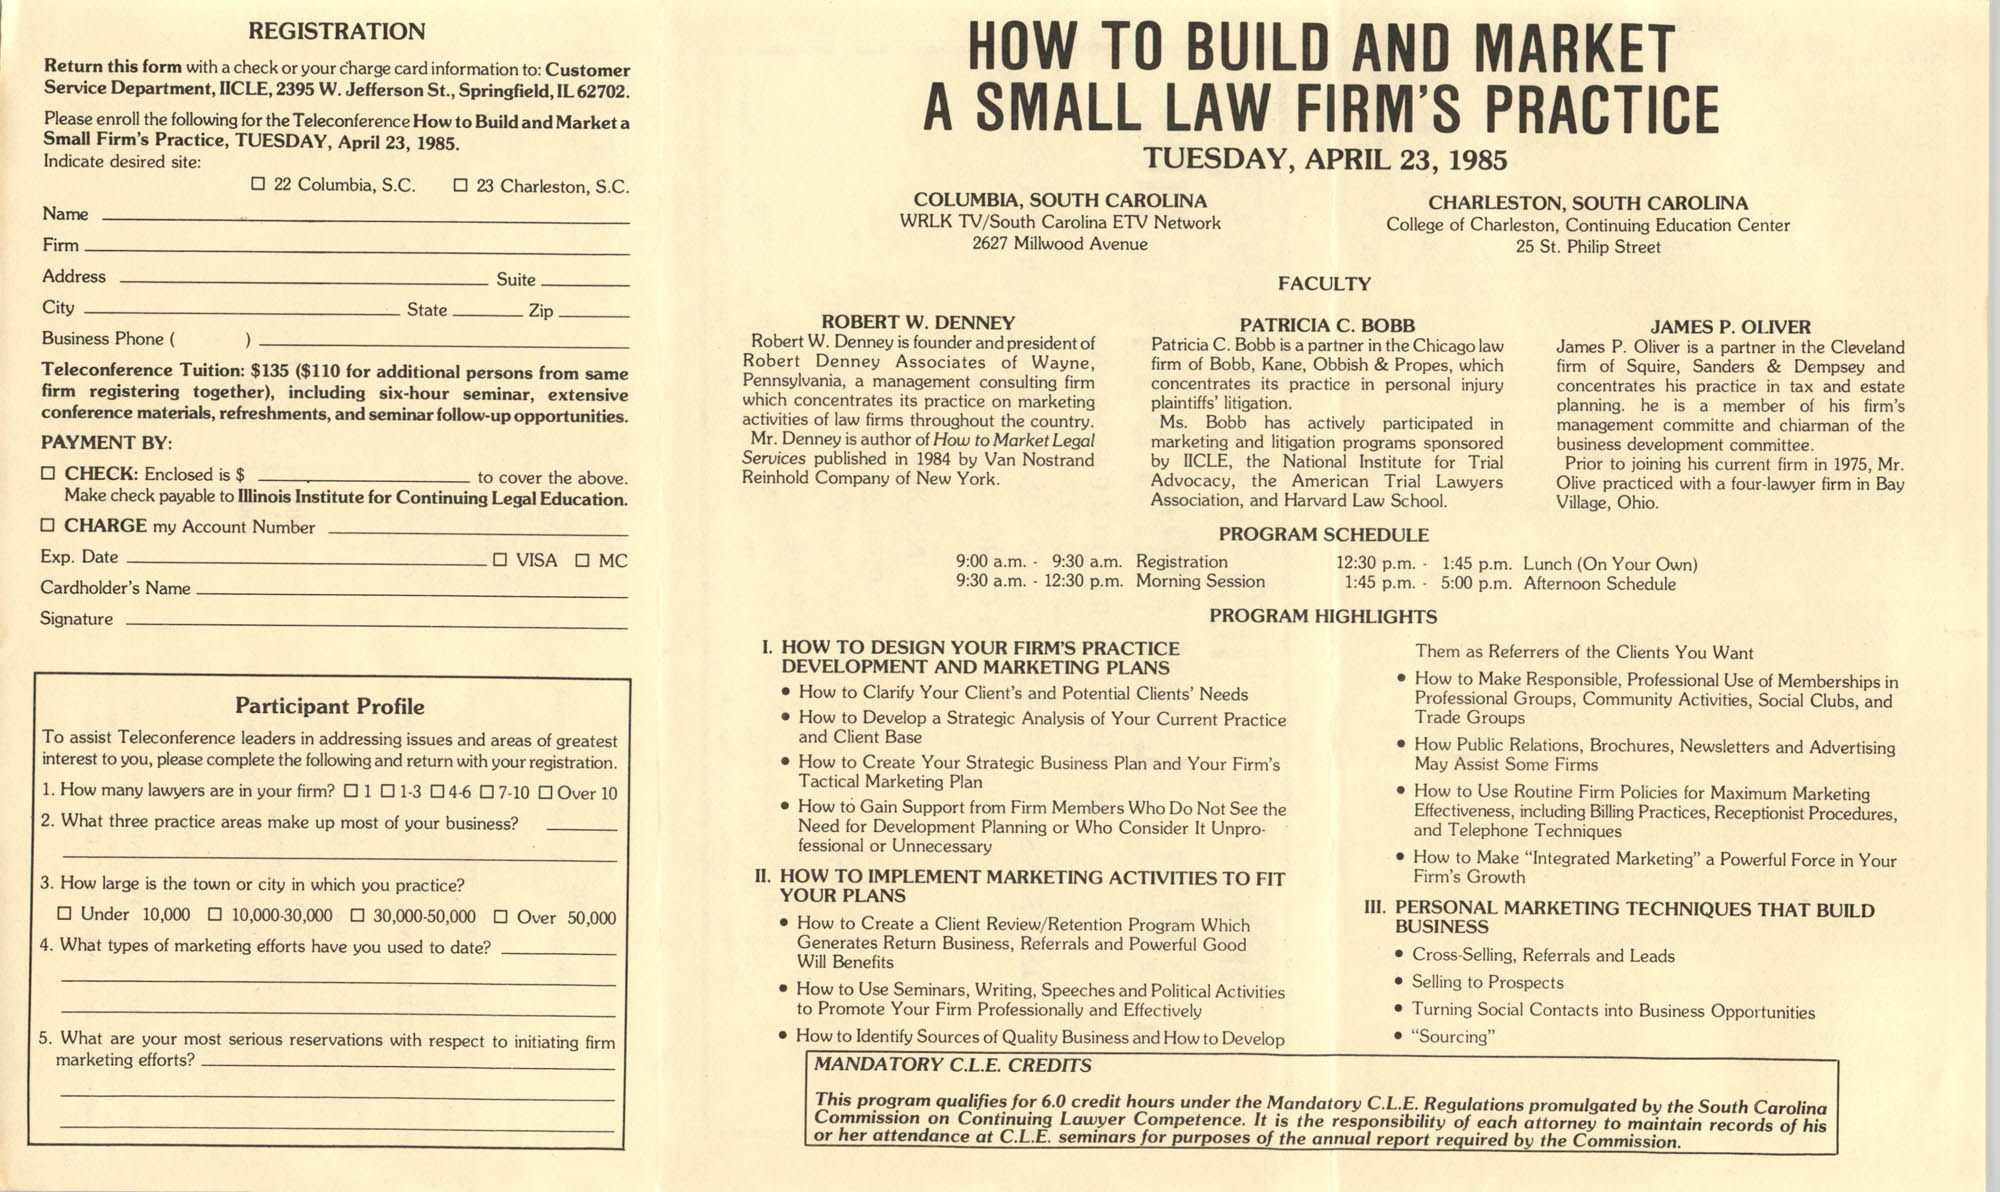 How to Build and Market a Small Law Firm's Practice, Satellite Video/CLE Seminar Pamphlet, April 23, 1985